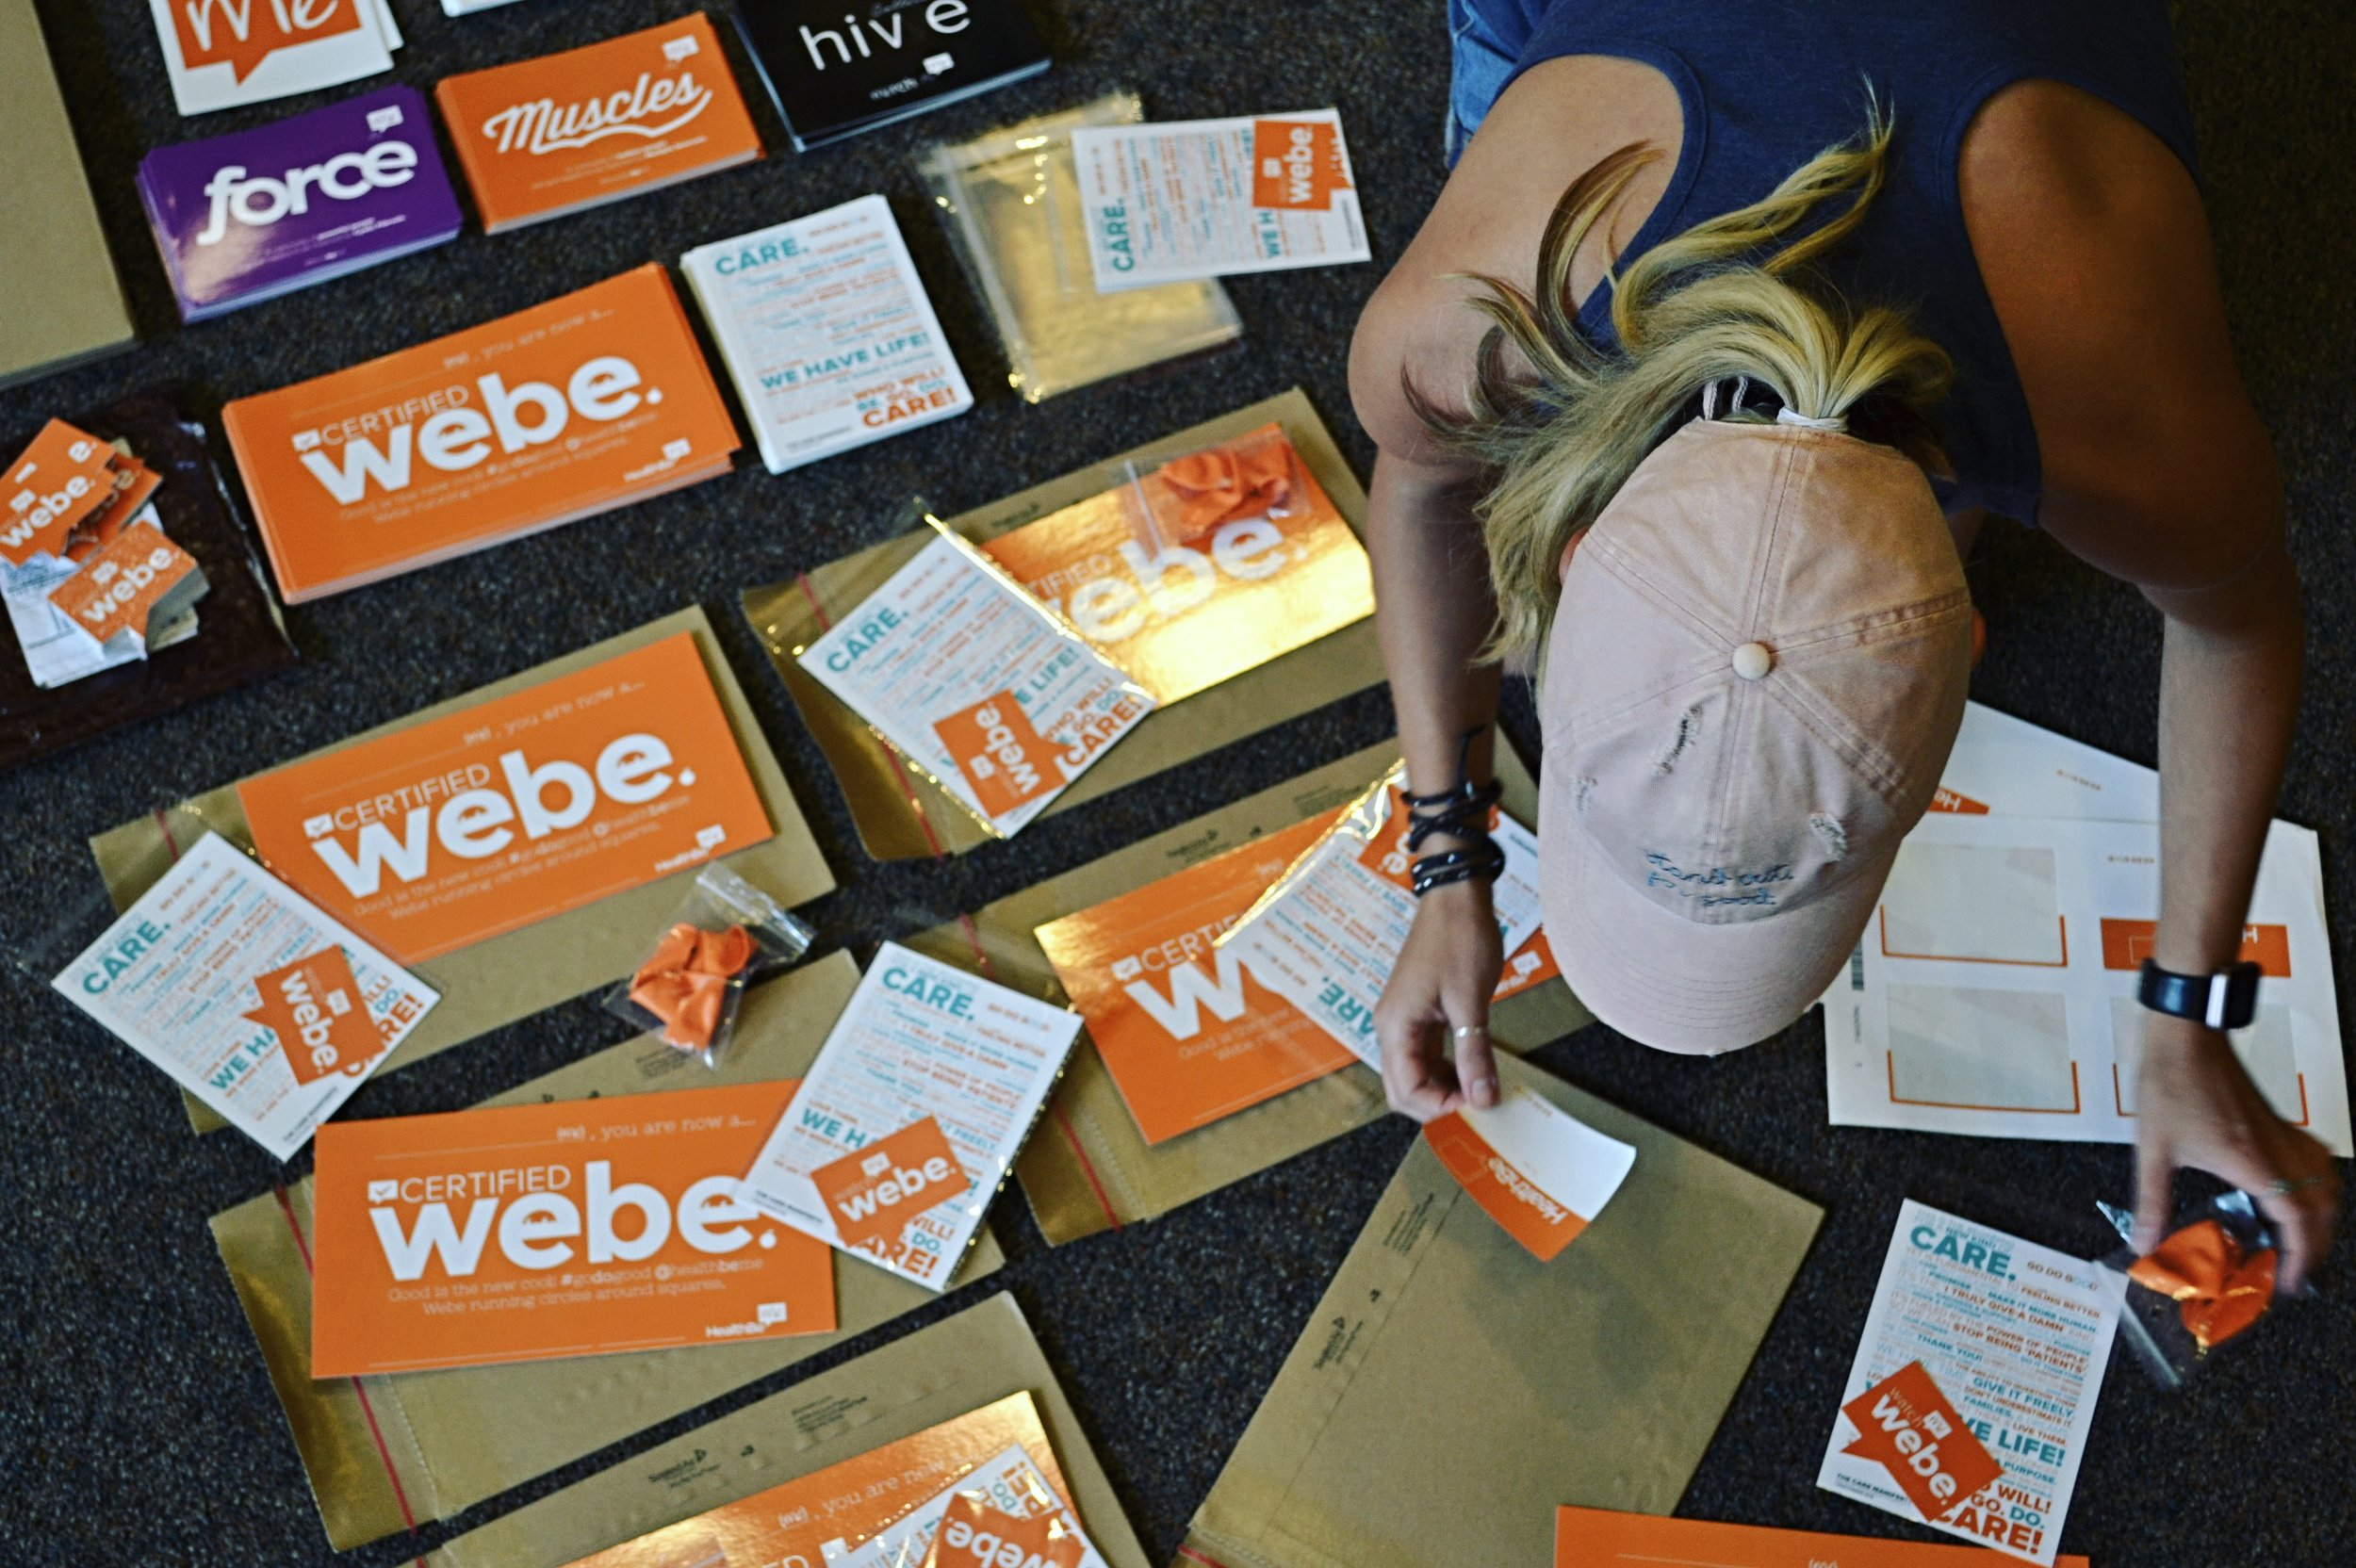 #webe - sign up for your webe welcome pack - no forms, no fuss, just a way to brighten your day for connecting care to health with us @HealthBeMe